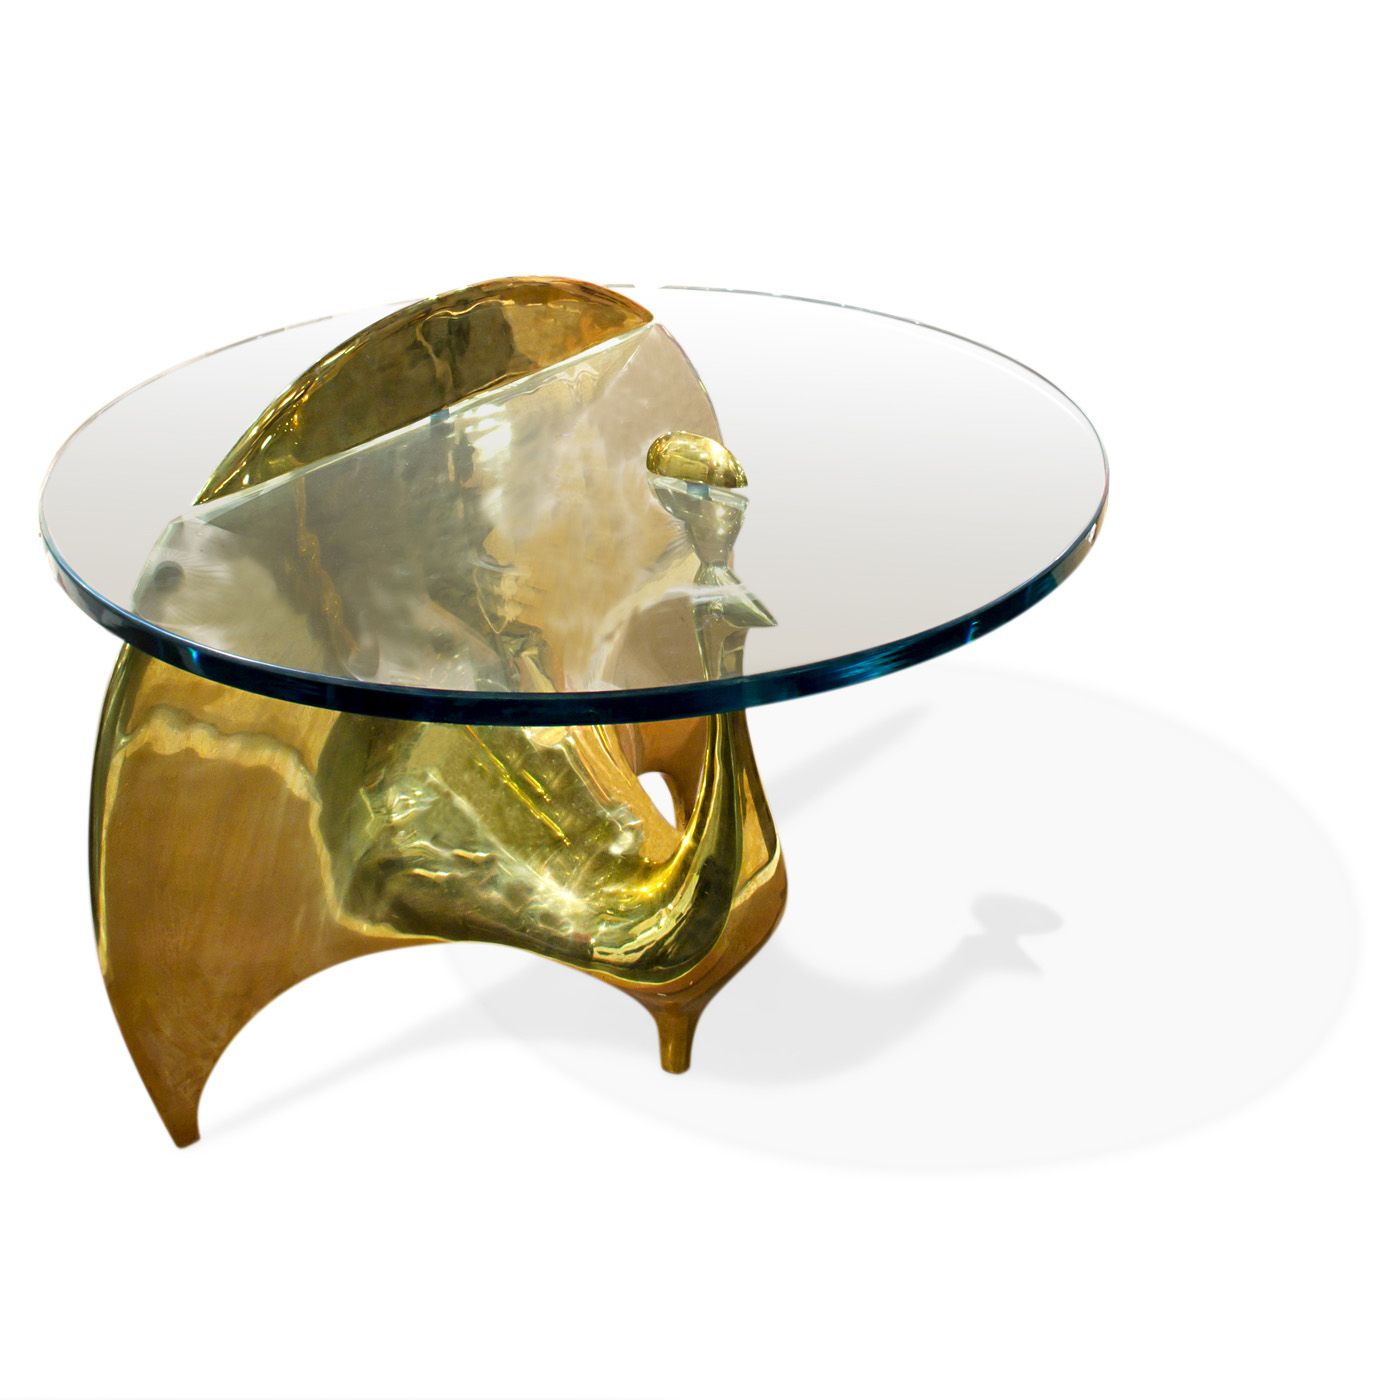 jonathan adler peacock simplified into simple sinuous lines simplify oval accent table made from solid brass with half asian lamp shade west elm marble top tile transition small